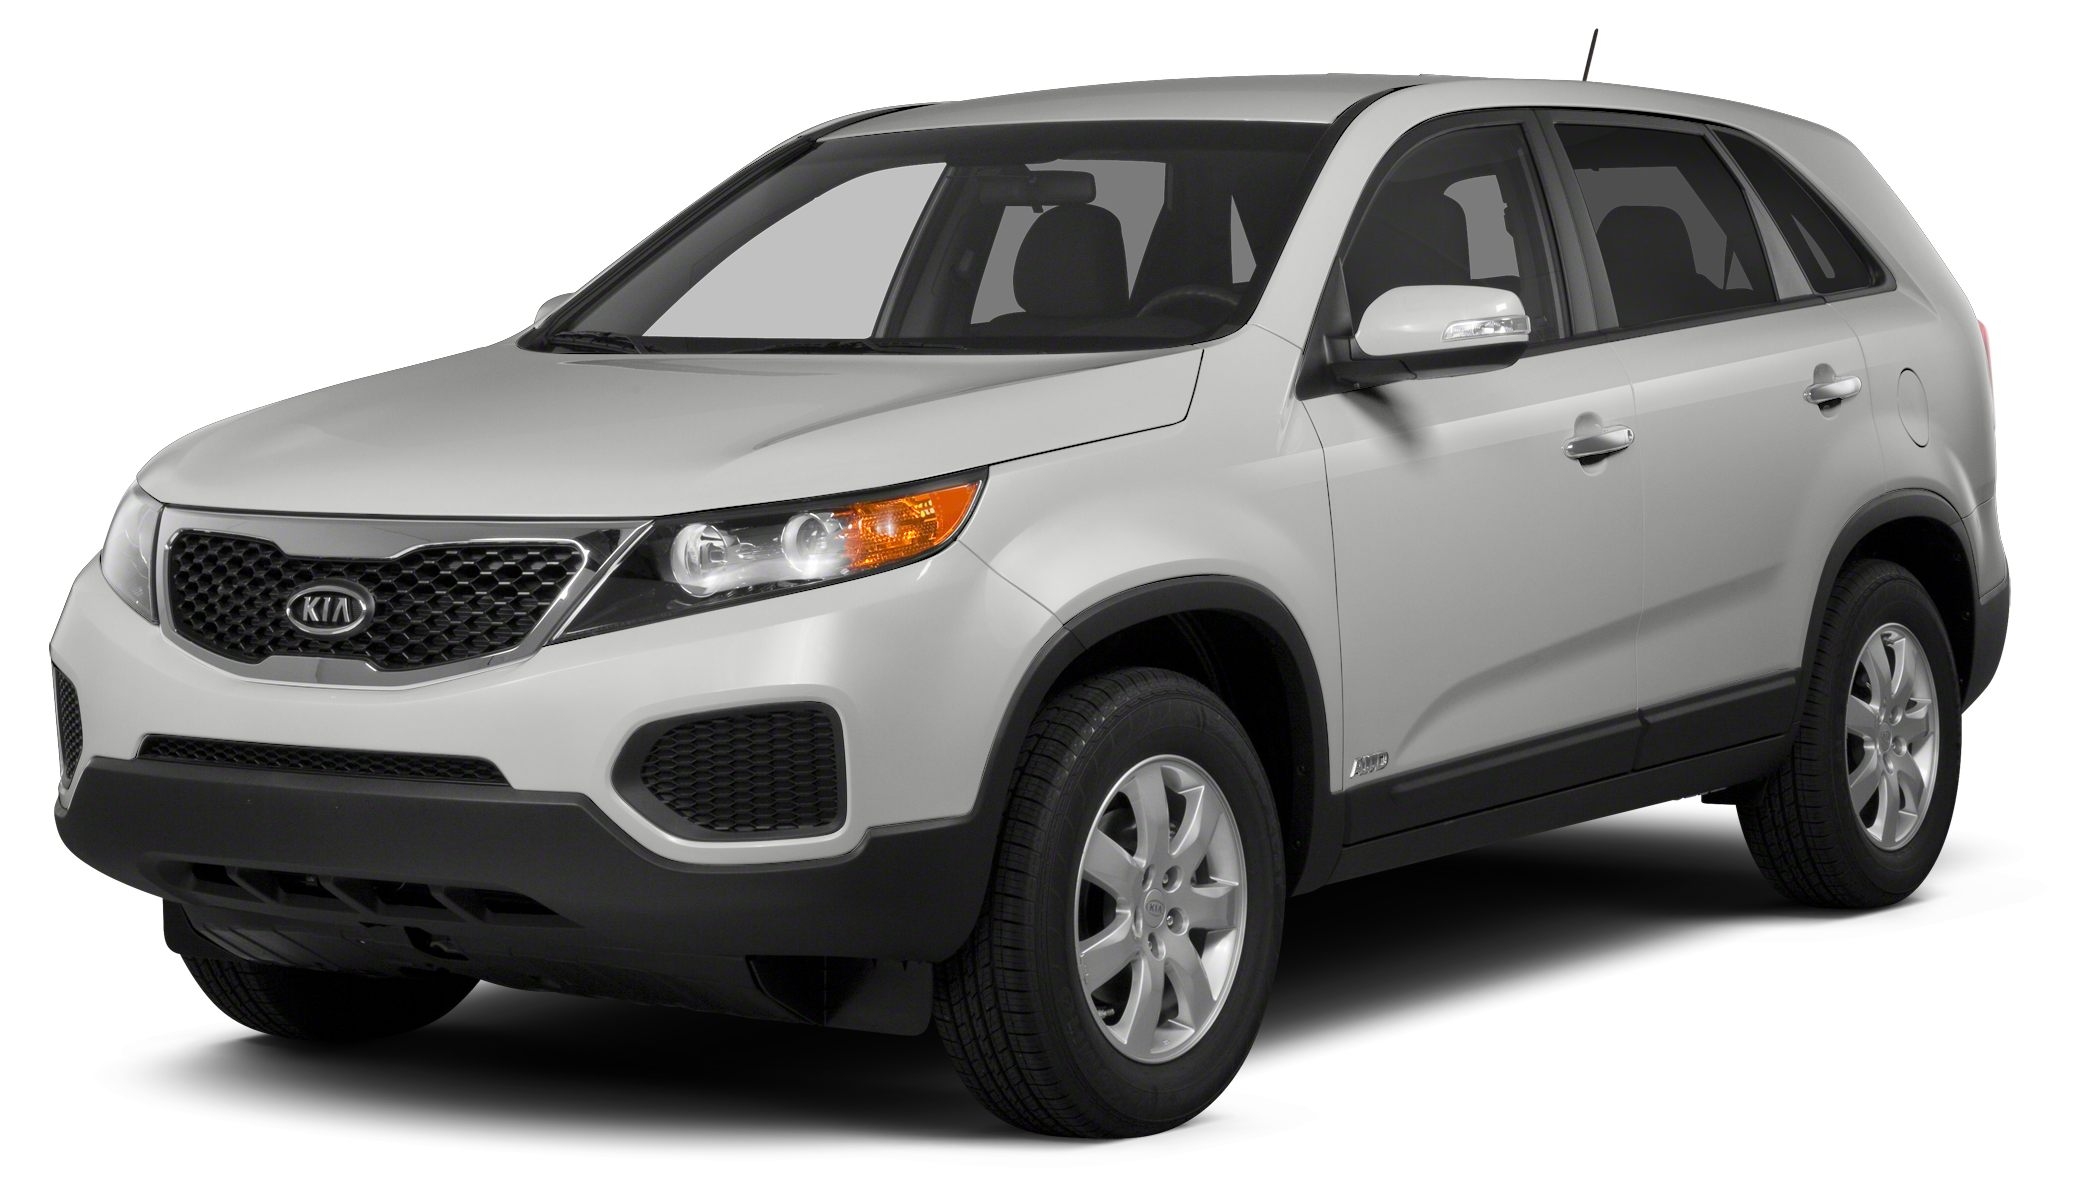 2013 Kia Sorento EX CLEAN CARFAX ONE OWNER BACK-UP-CAMERA BLUETOOTH LEATHER NA